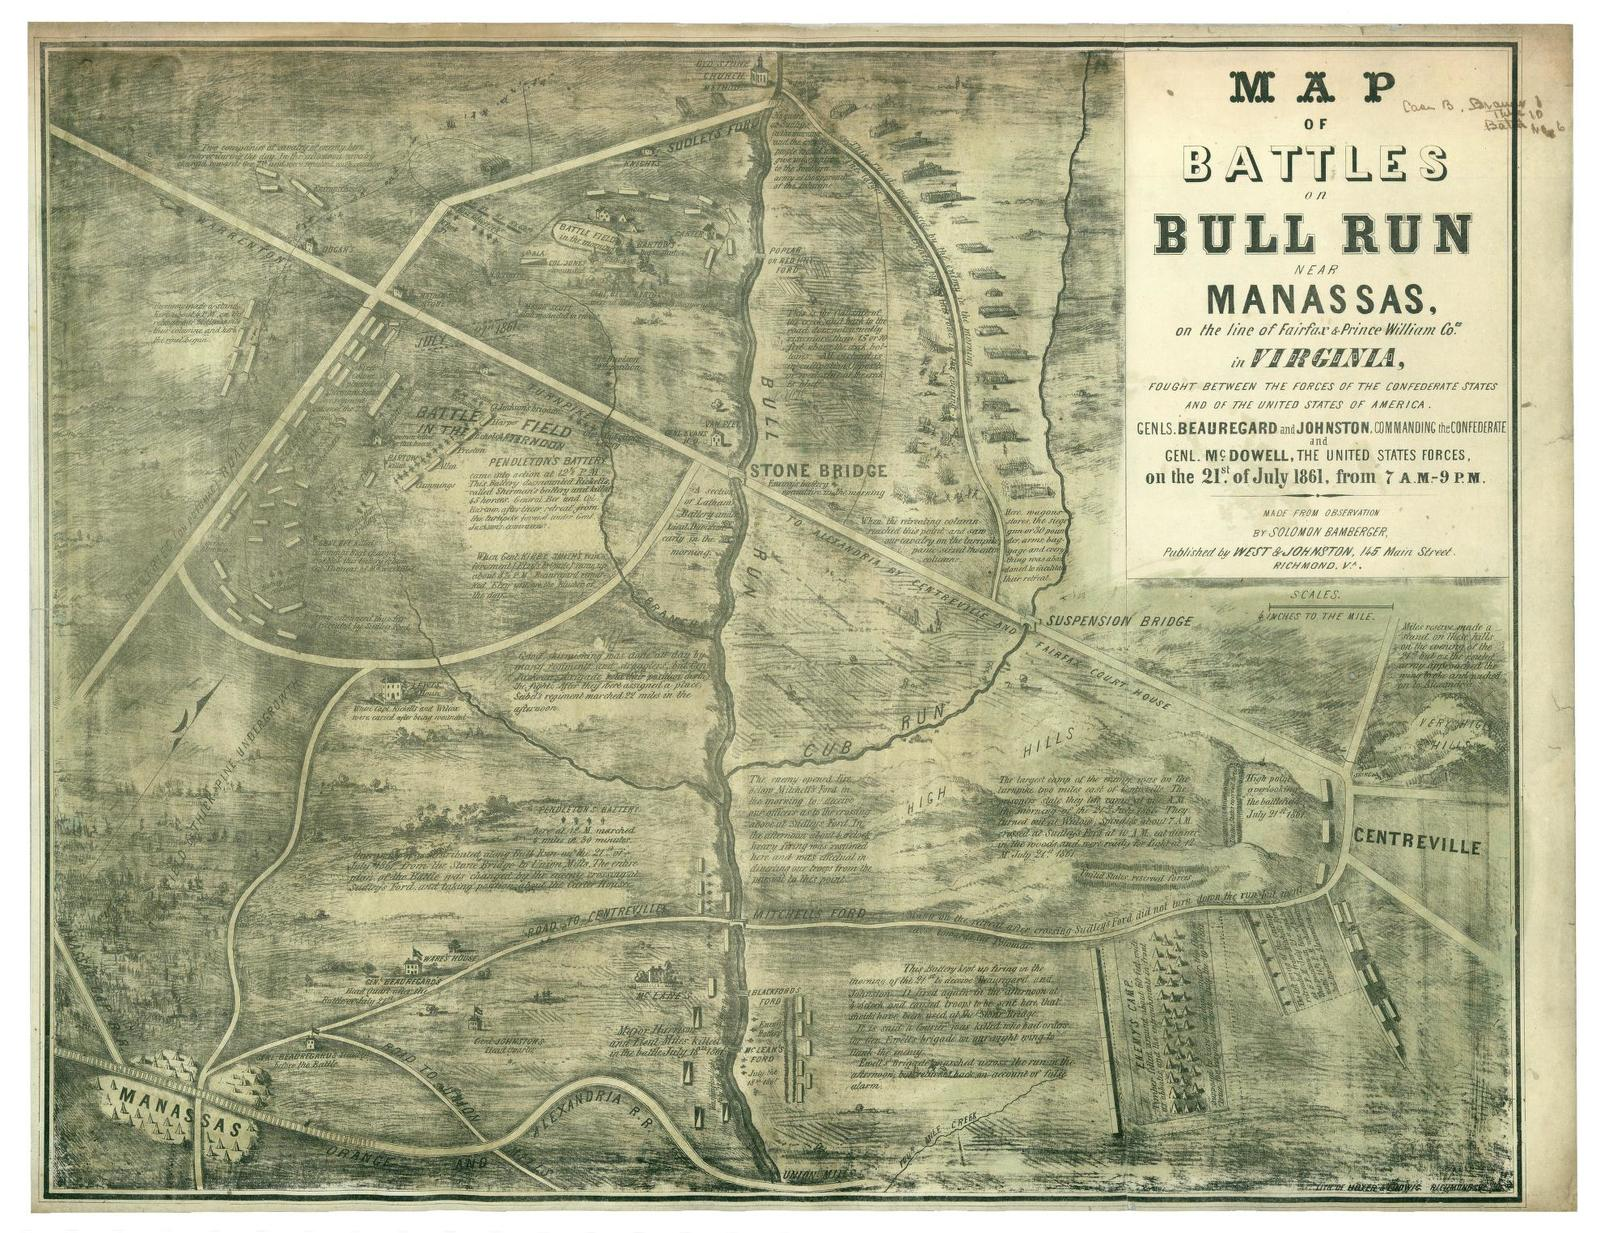 Map of battles on Bull Run near Manassas, 21st of July 1861 on the line of Fairfax & Prince William Co[unti]es in Virginia, fought between the forces of the Confederate States and of the United States of America /